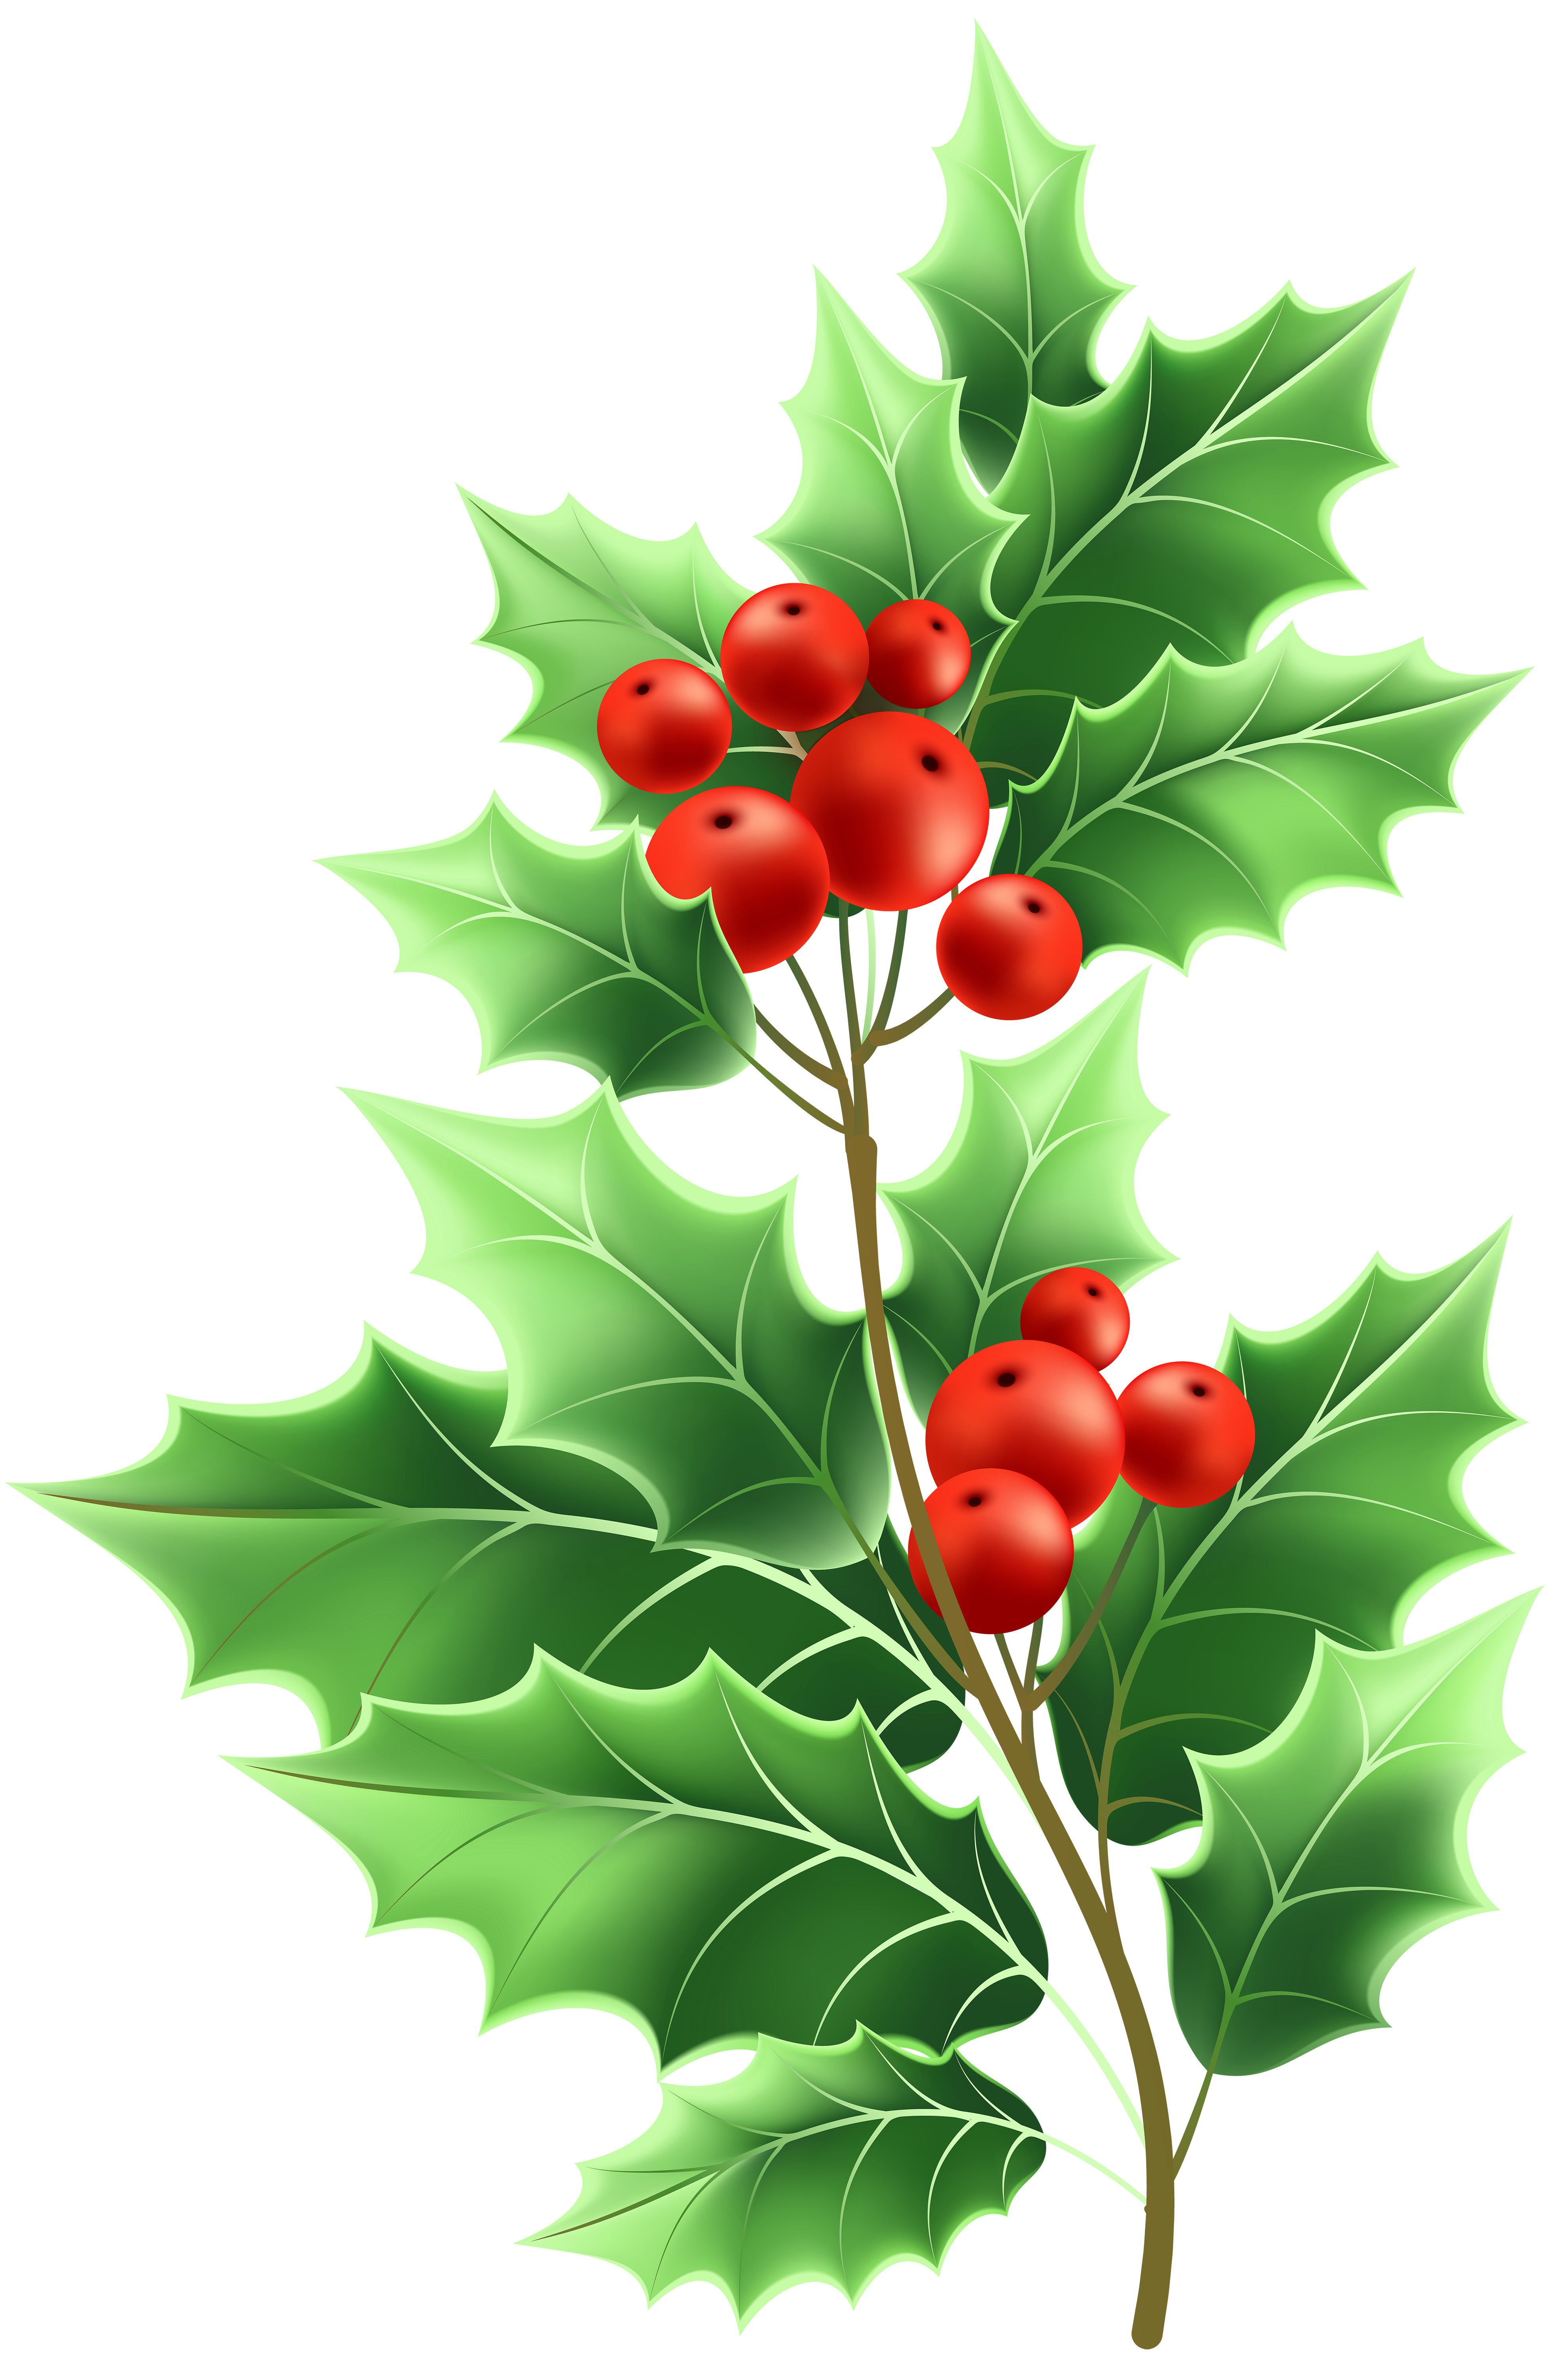 Christmas mistletoe clipart clipart freeuse Image file formats Lossless compression - Christmas Mistletoe ... clipart freeuse